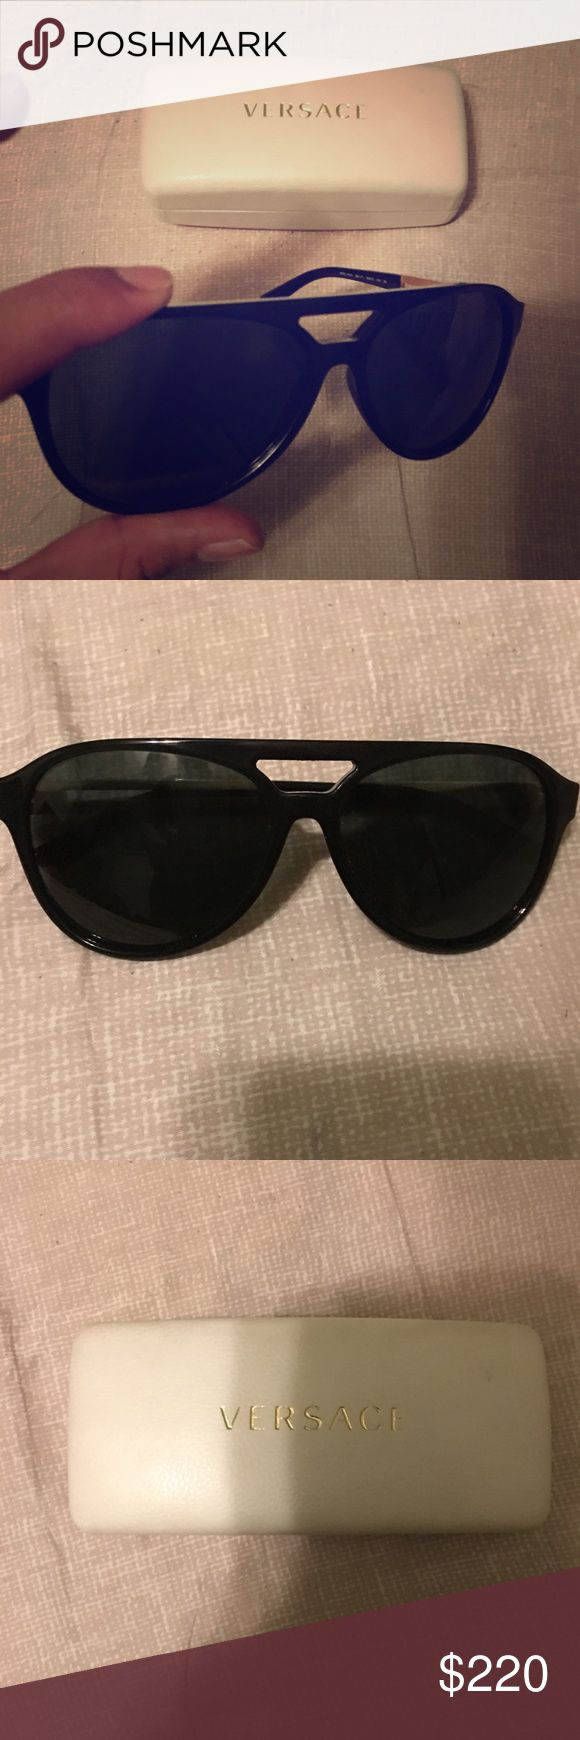 Versace sunglasses Slightly worn Mens Versace aviator style sunglasses. Selling because I feel like they are too big for my face. Versace Accessories Sunglasses